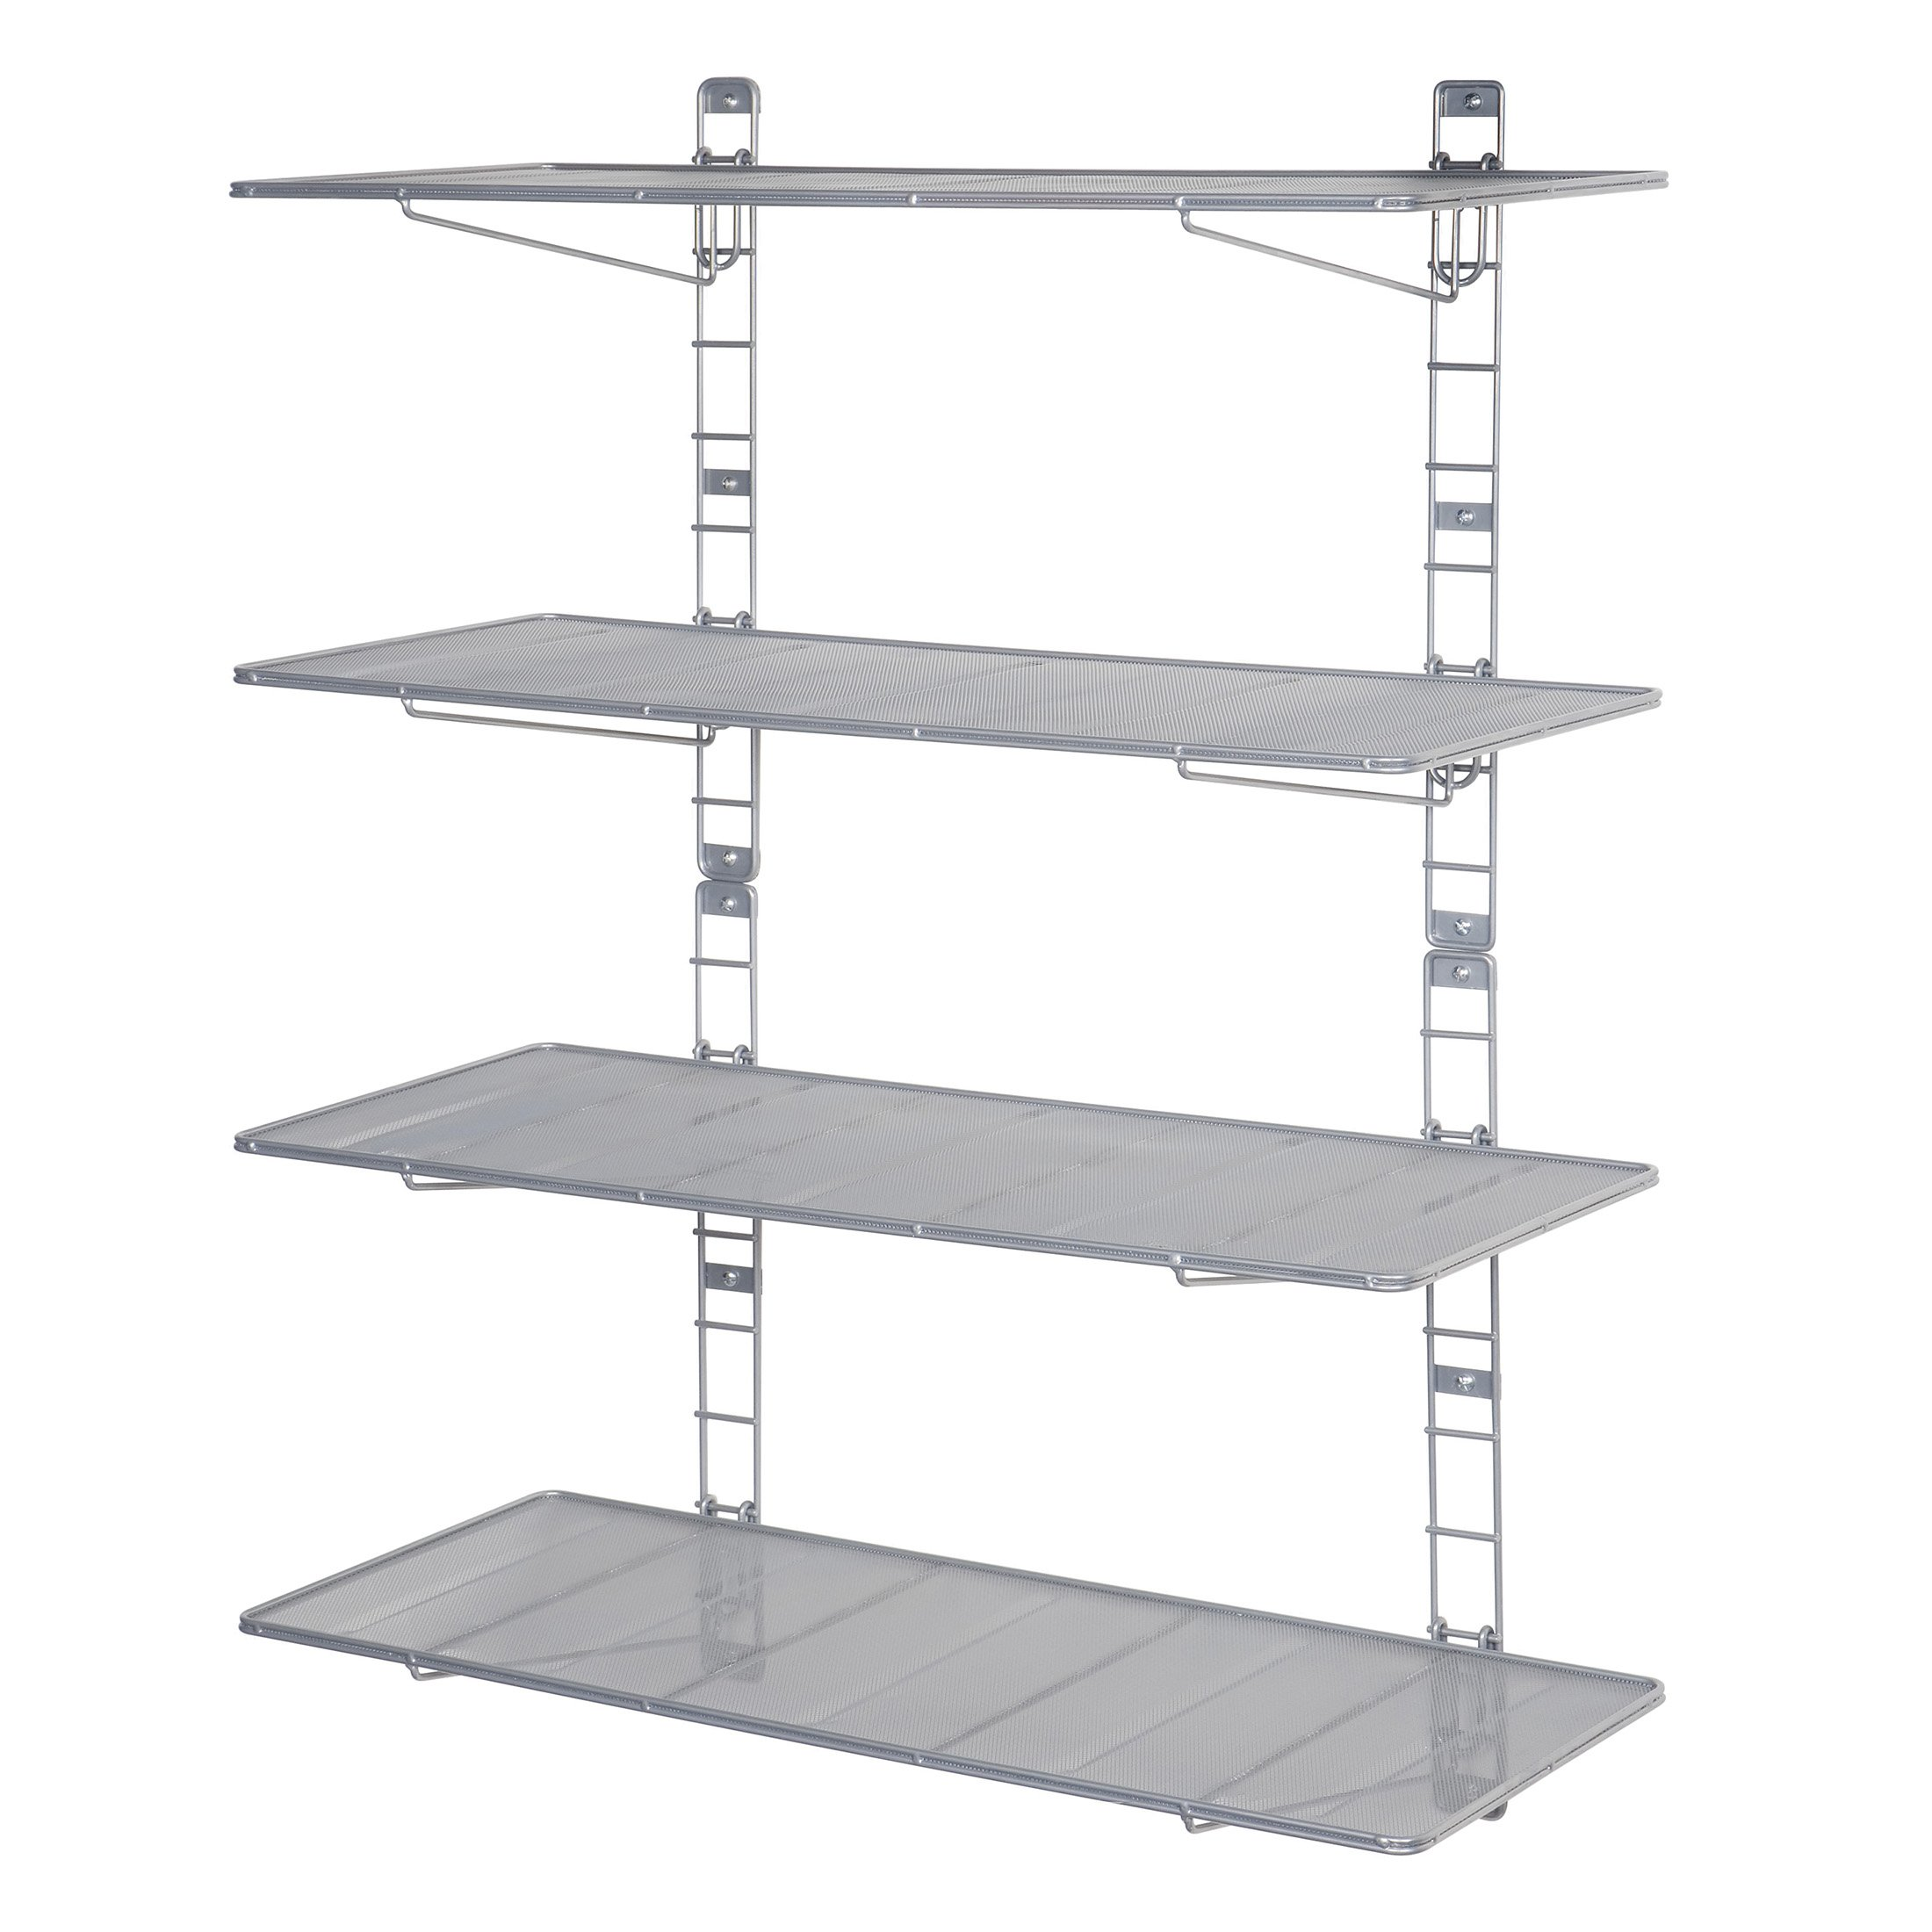 Seville Classics 2-Tier Iron Mesh Adjustable Floating Wall Shelves, 36'' x 14'', Satin Pewter by Seville Classics (Image #6)